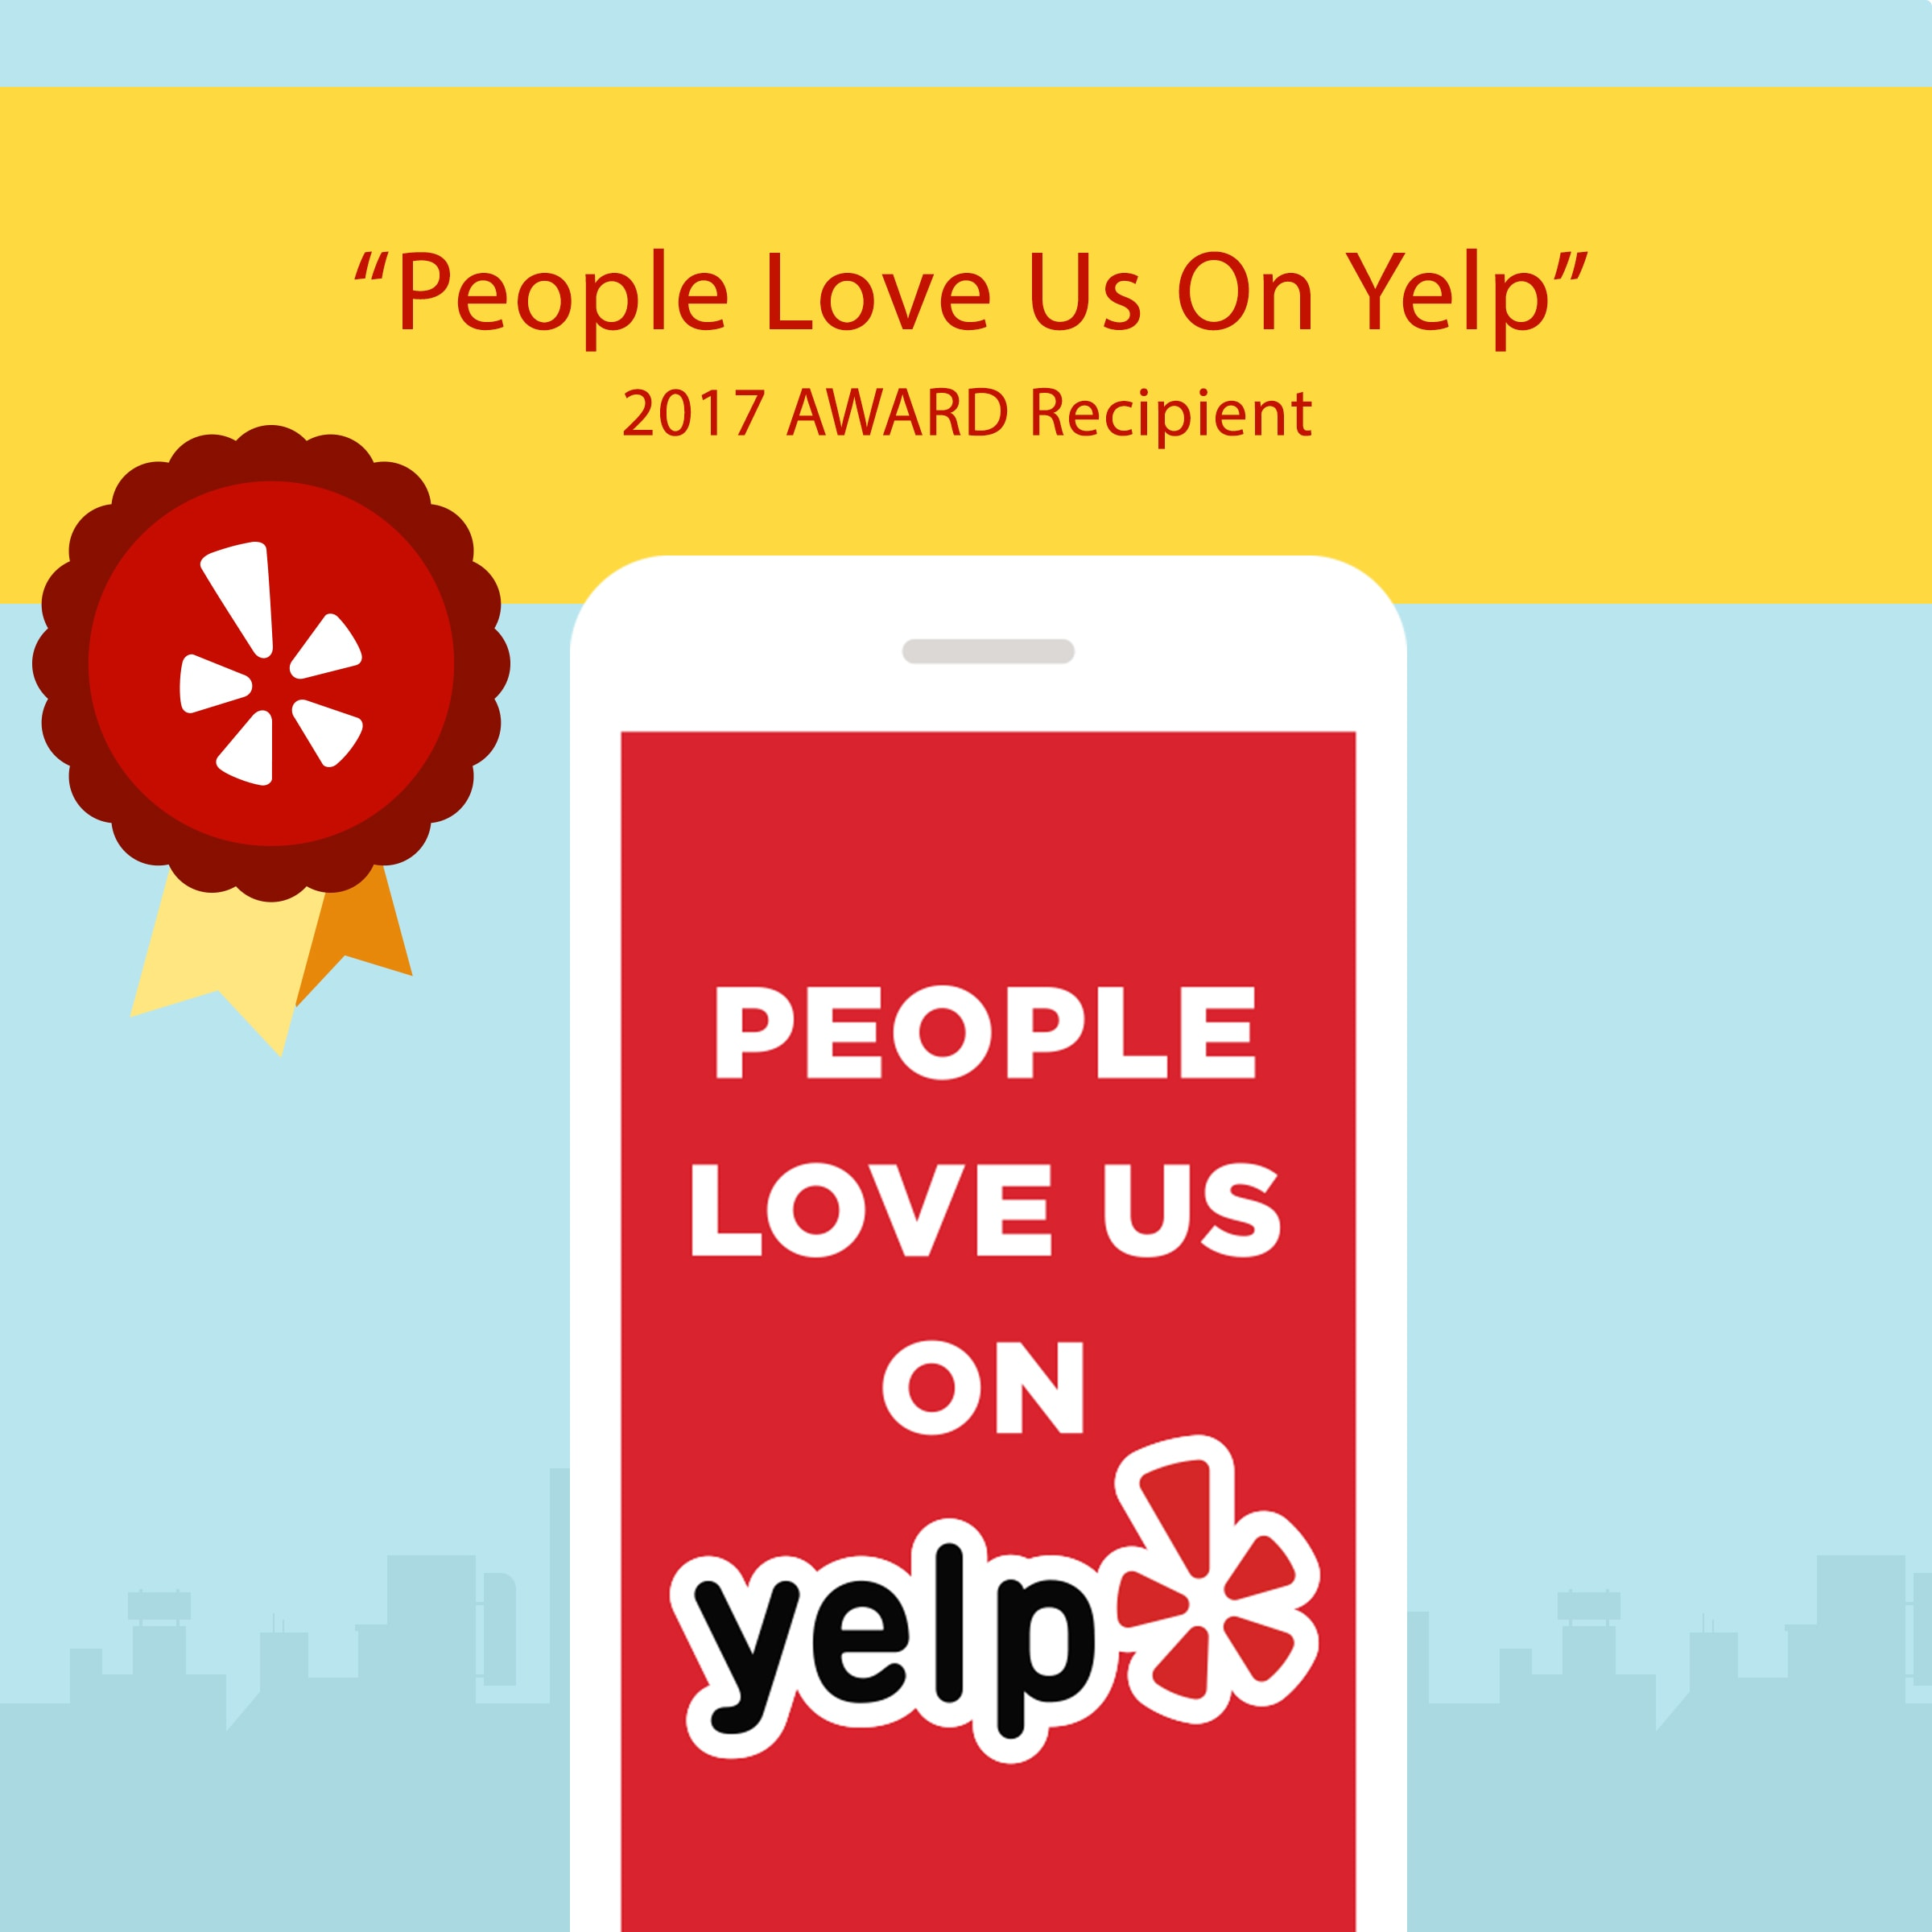 People Love Us on Yelp : 2017 Award Recipient